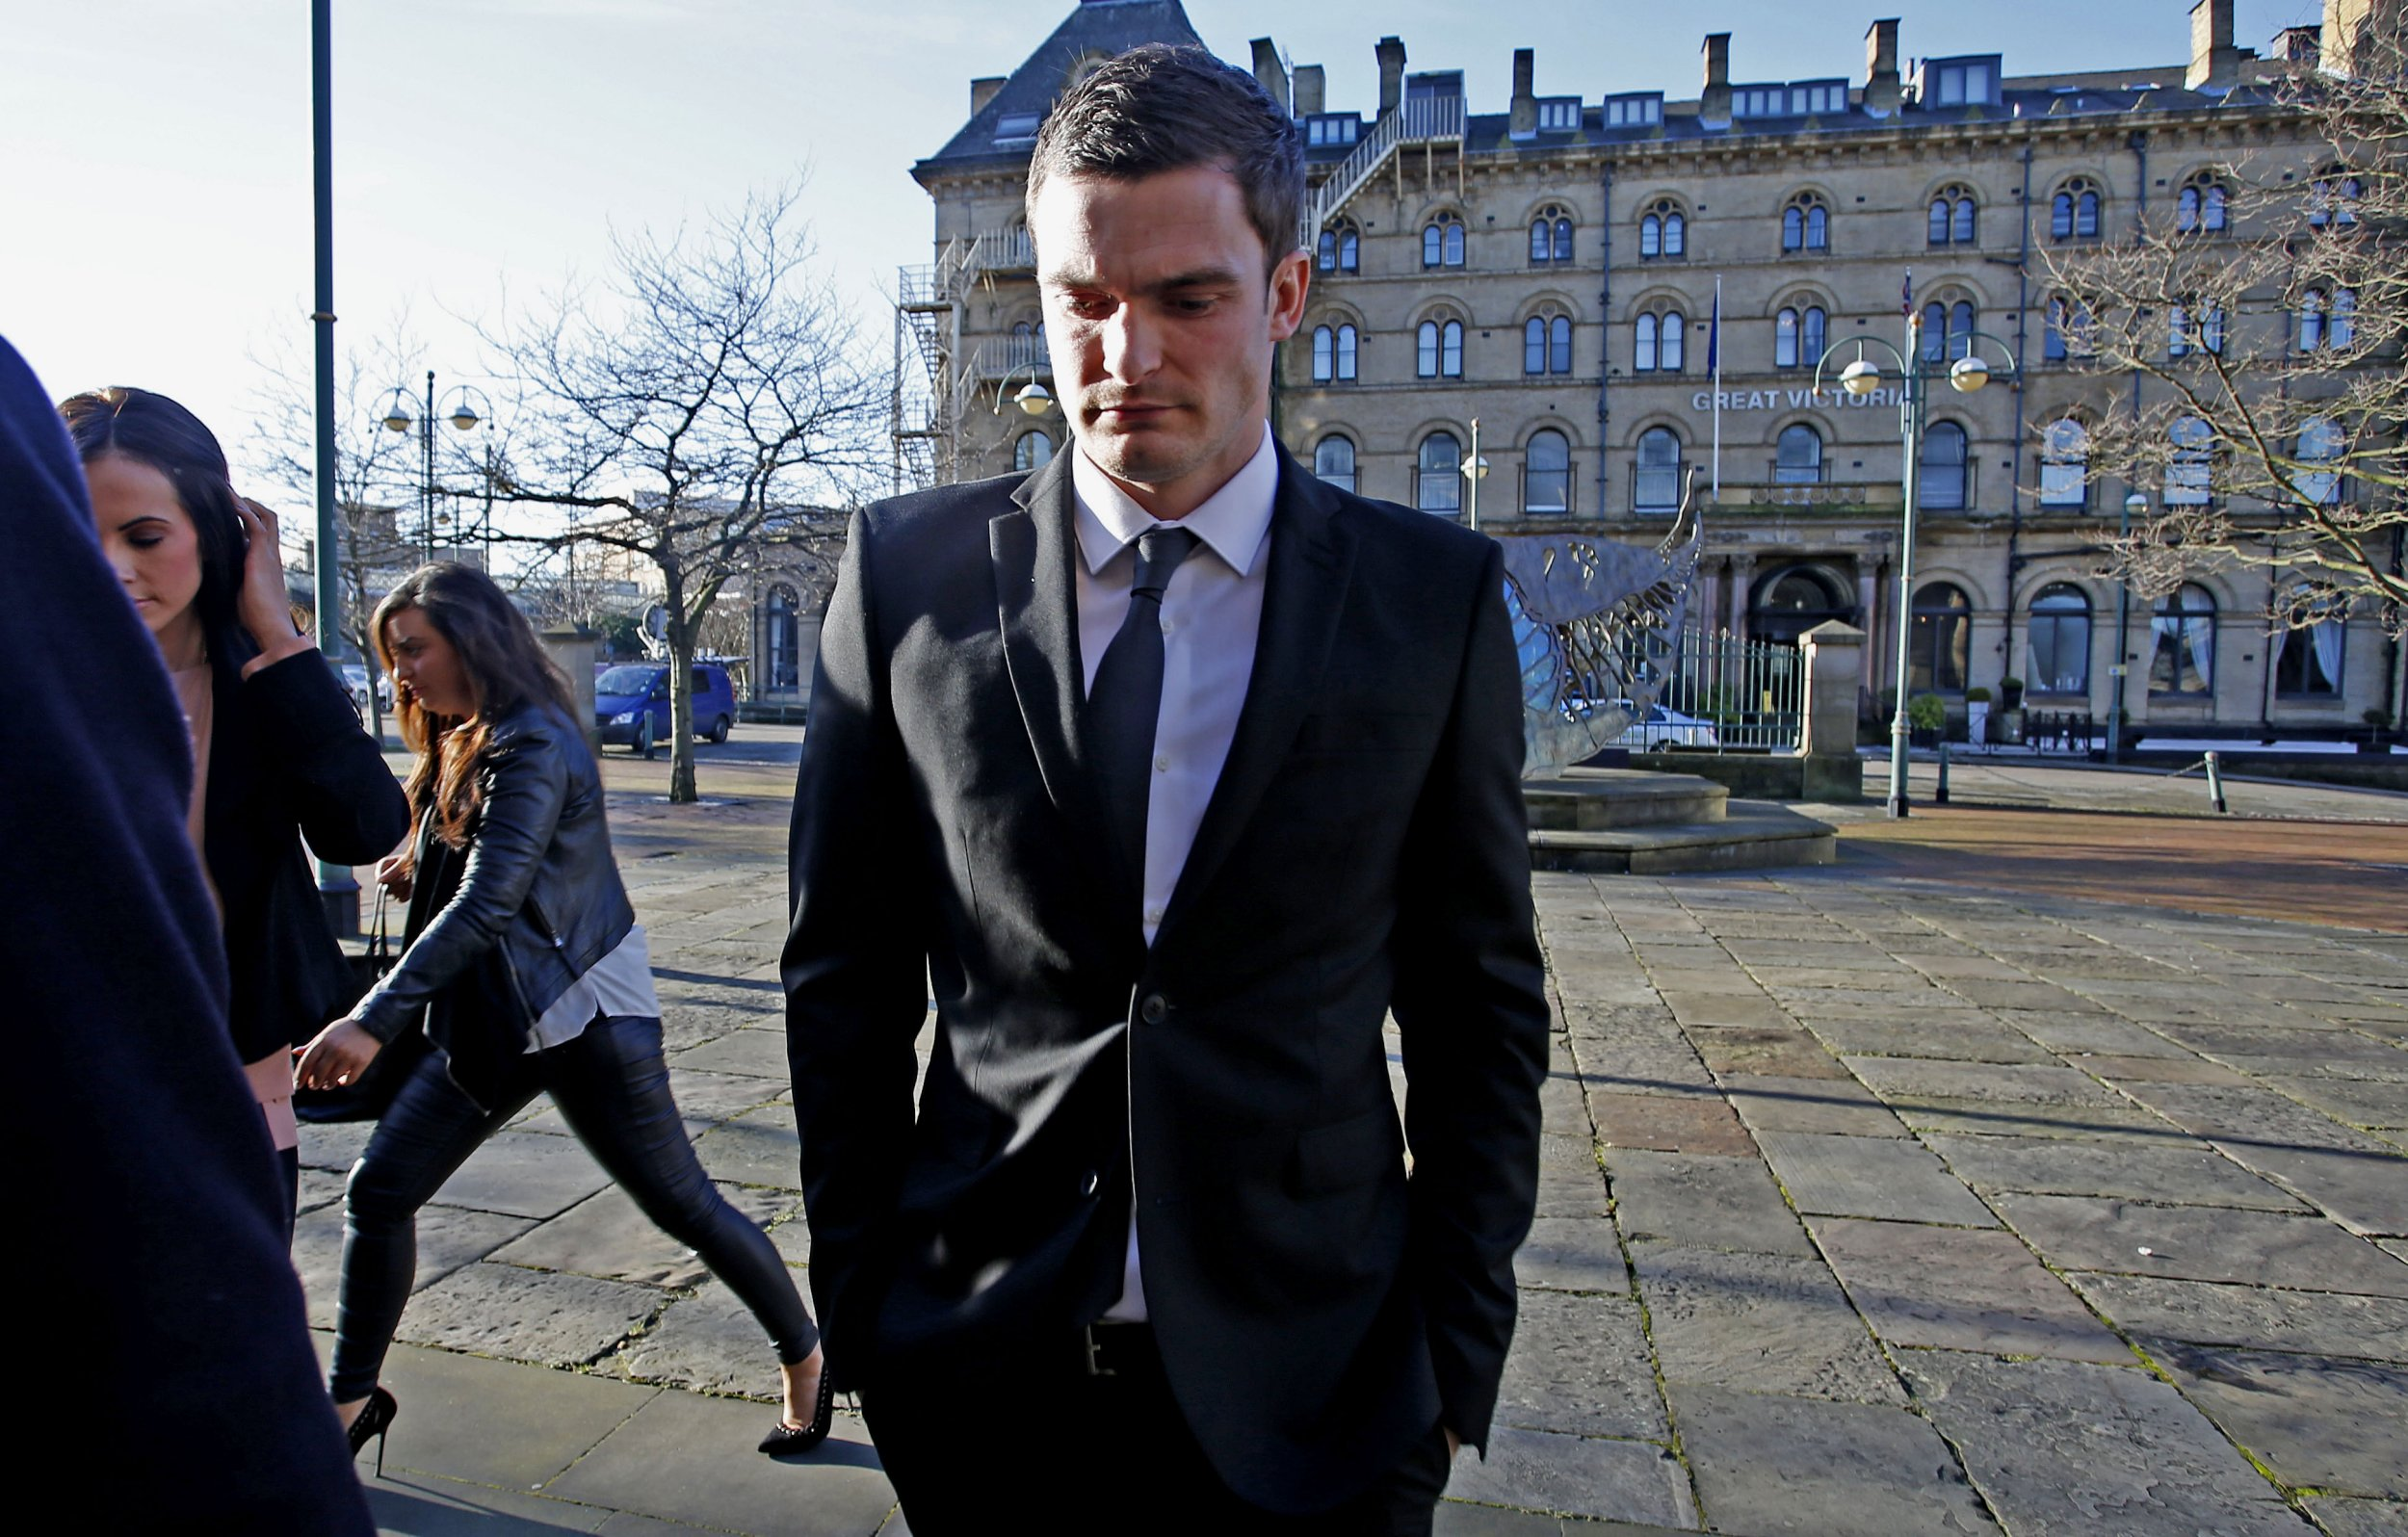 England footballer Adam Johnson, 28, arrives at Bradford Crown Court, Bradford, where he is due to go on trial accused of child sex charges. PRESS ASSOCIATION Photo. Picture date: Wednesday February 10, 2016. The 28-year-old Sunderland winger is set to appear following allegations of sexual activity with a girl under 16. See PA story COURTS Johnson. Photo credit should read: Peter Byrne/PA Wire